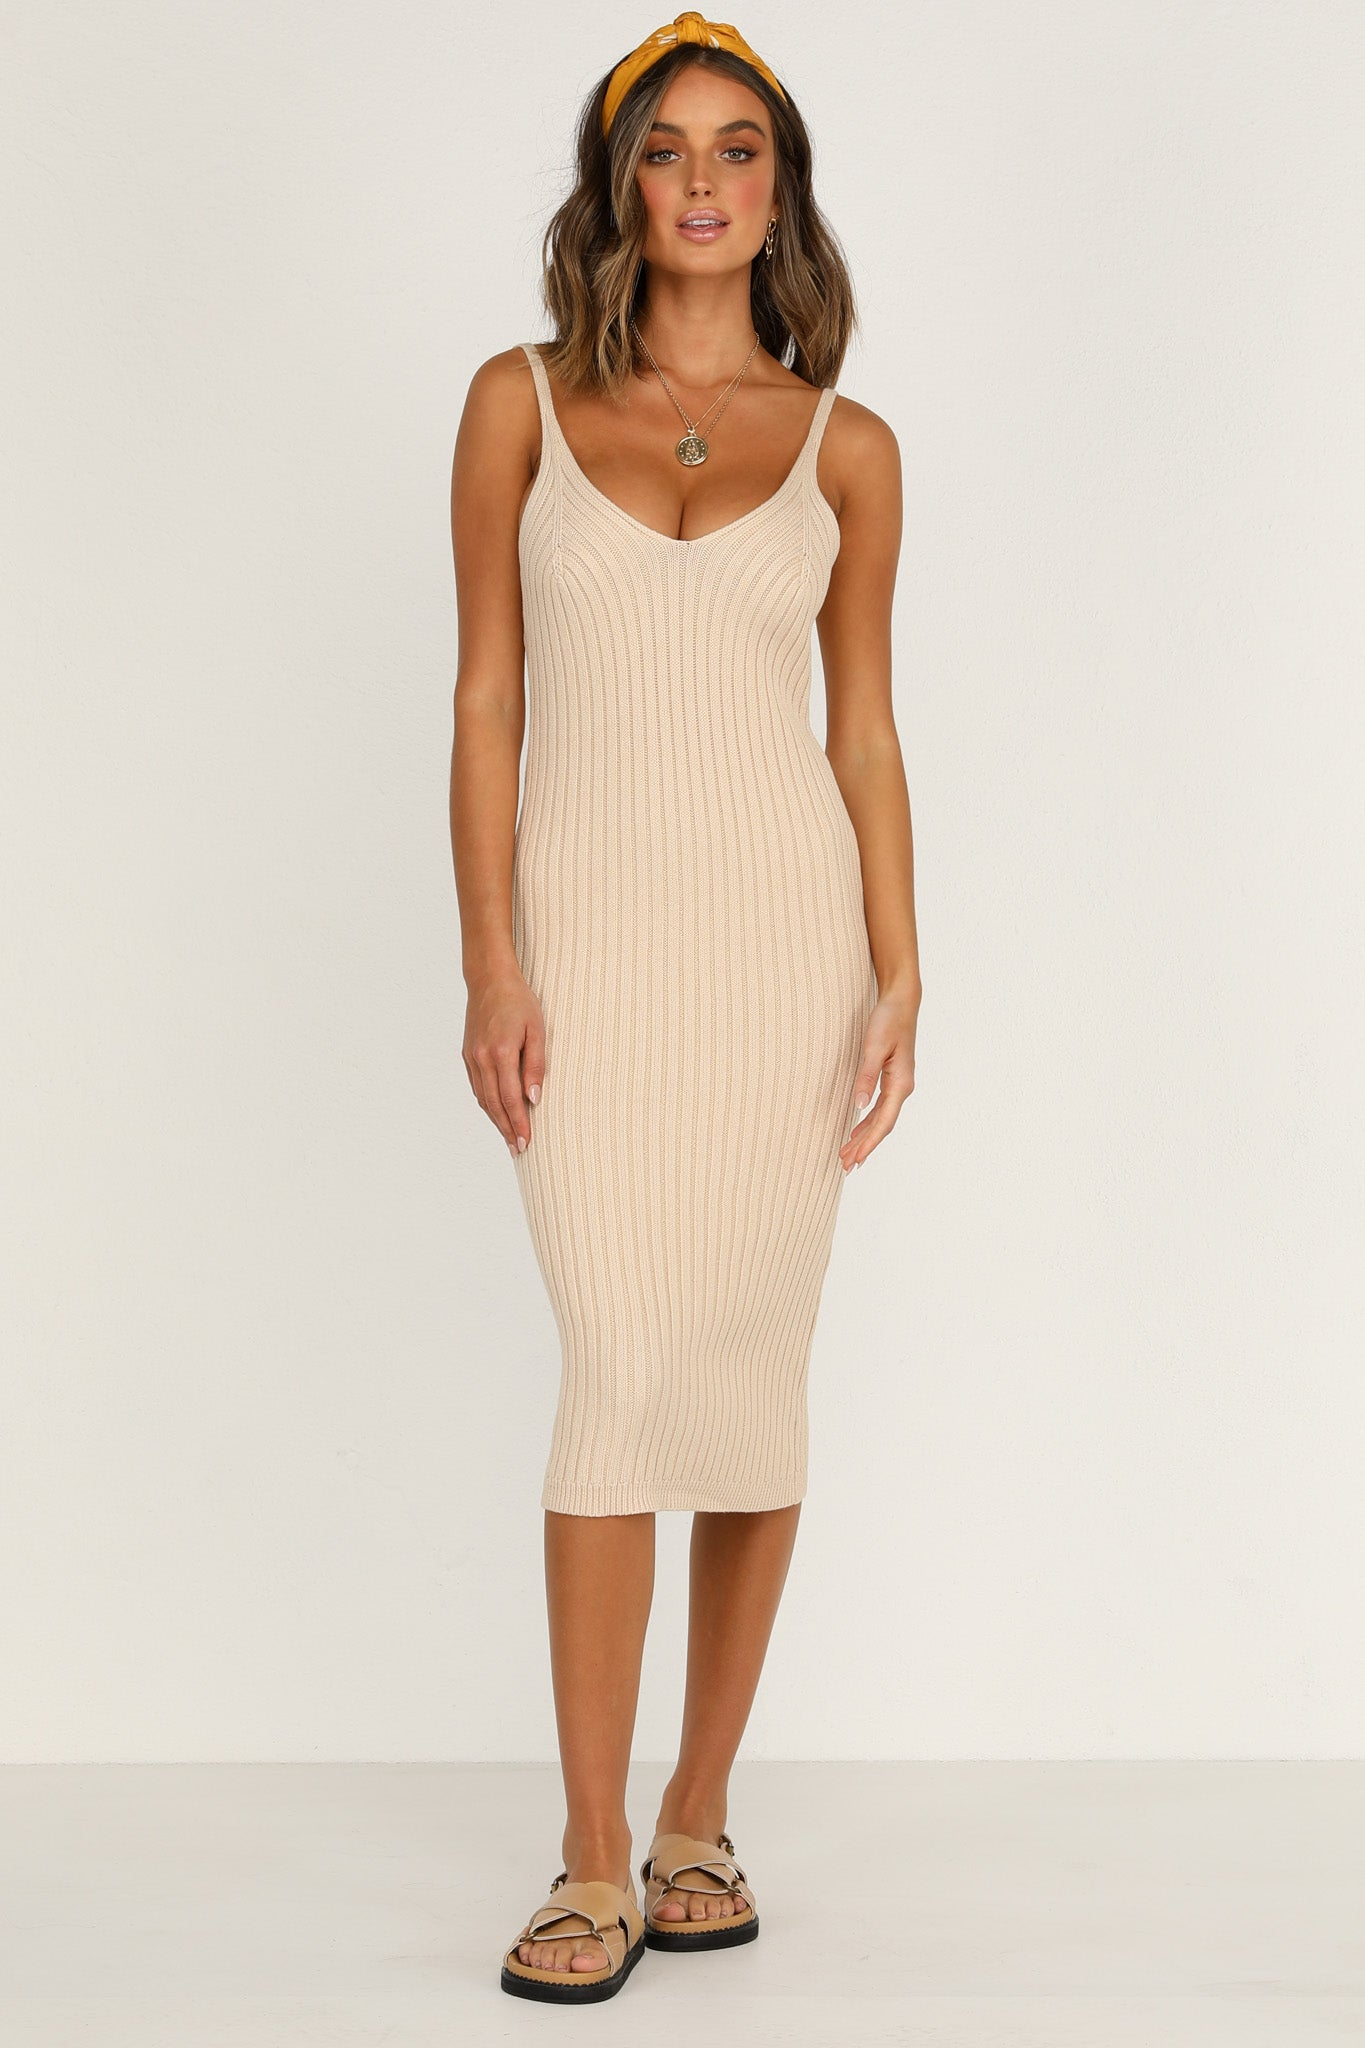 Next Lifetime Dress (Beige)